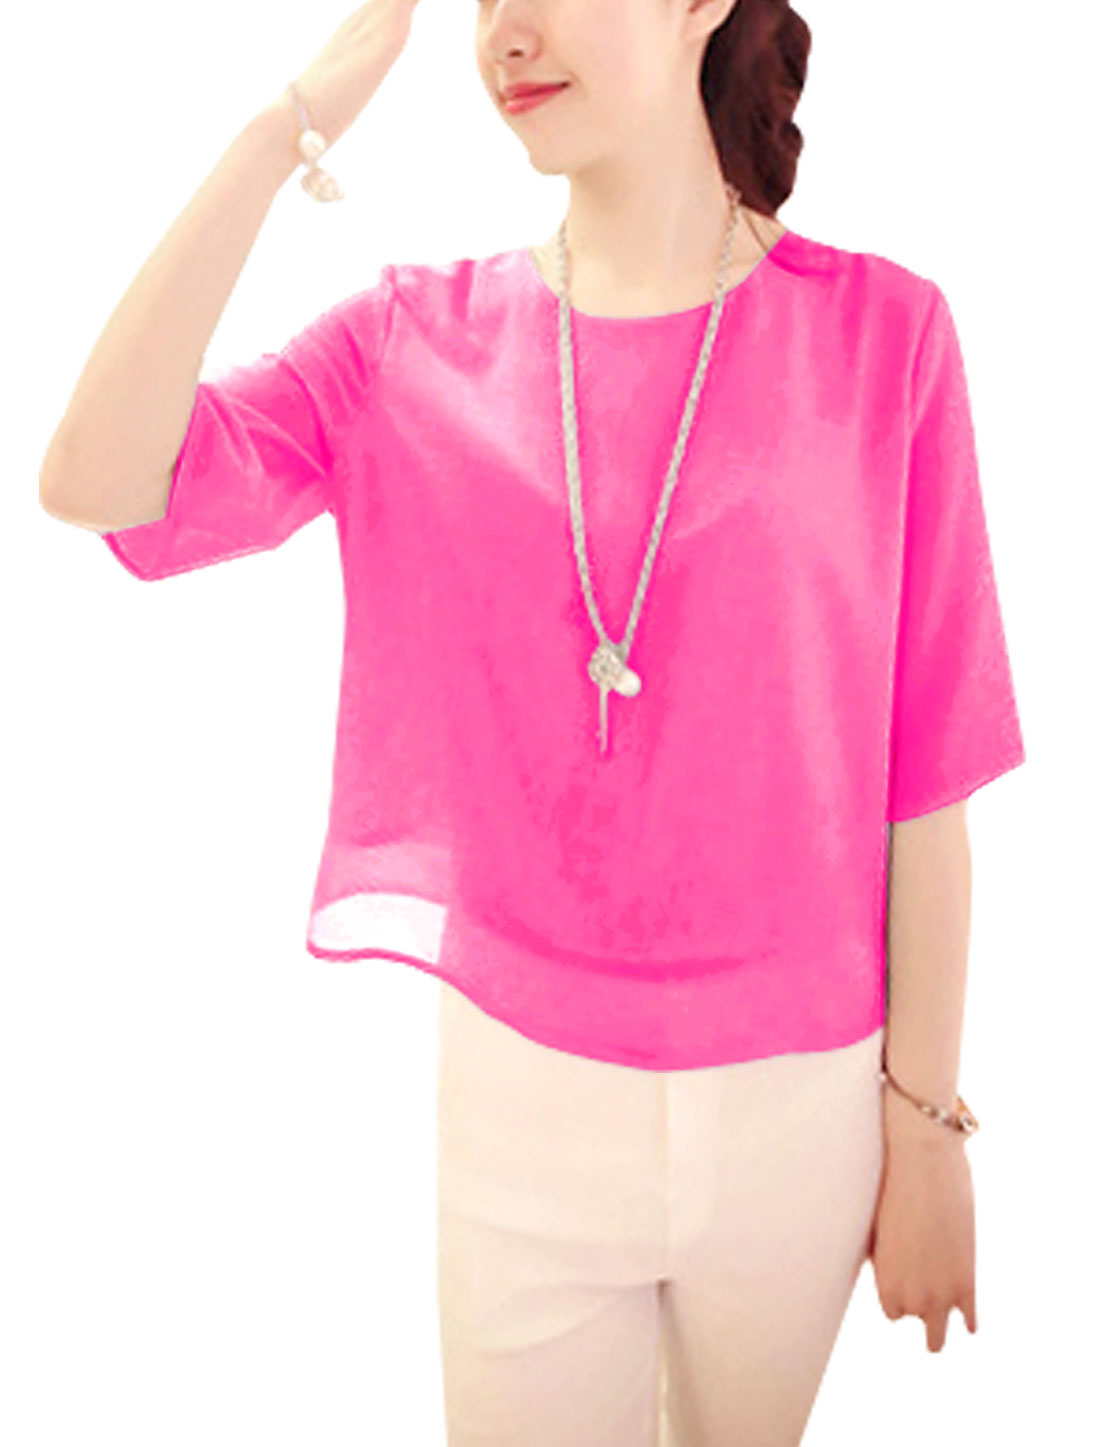 Ladies Elbow Sleeve Chic Chiffon Top Blouse Fuchsia XS